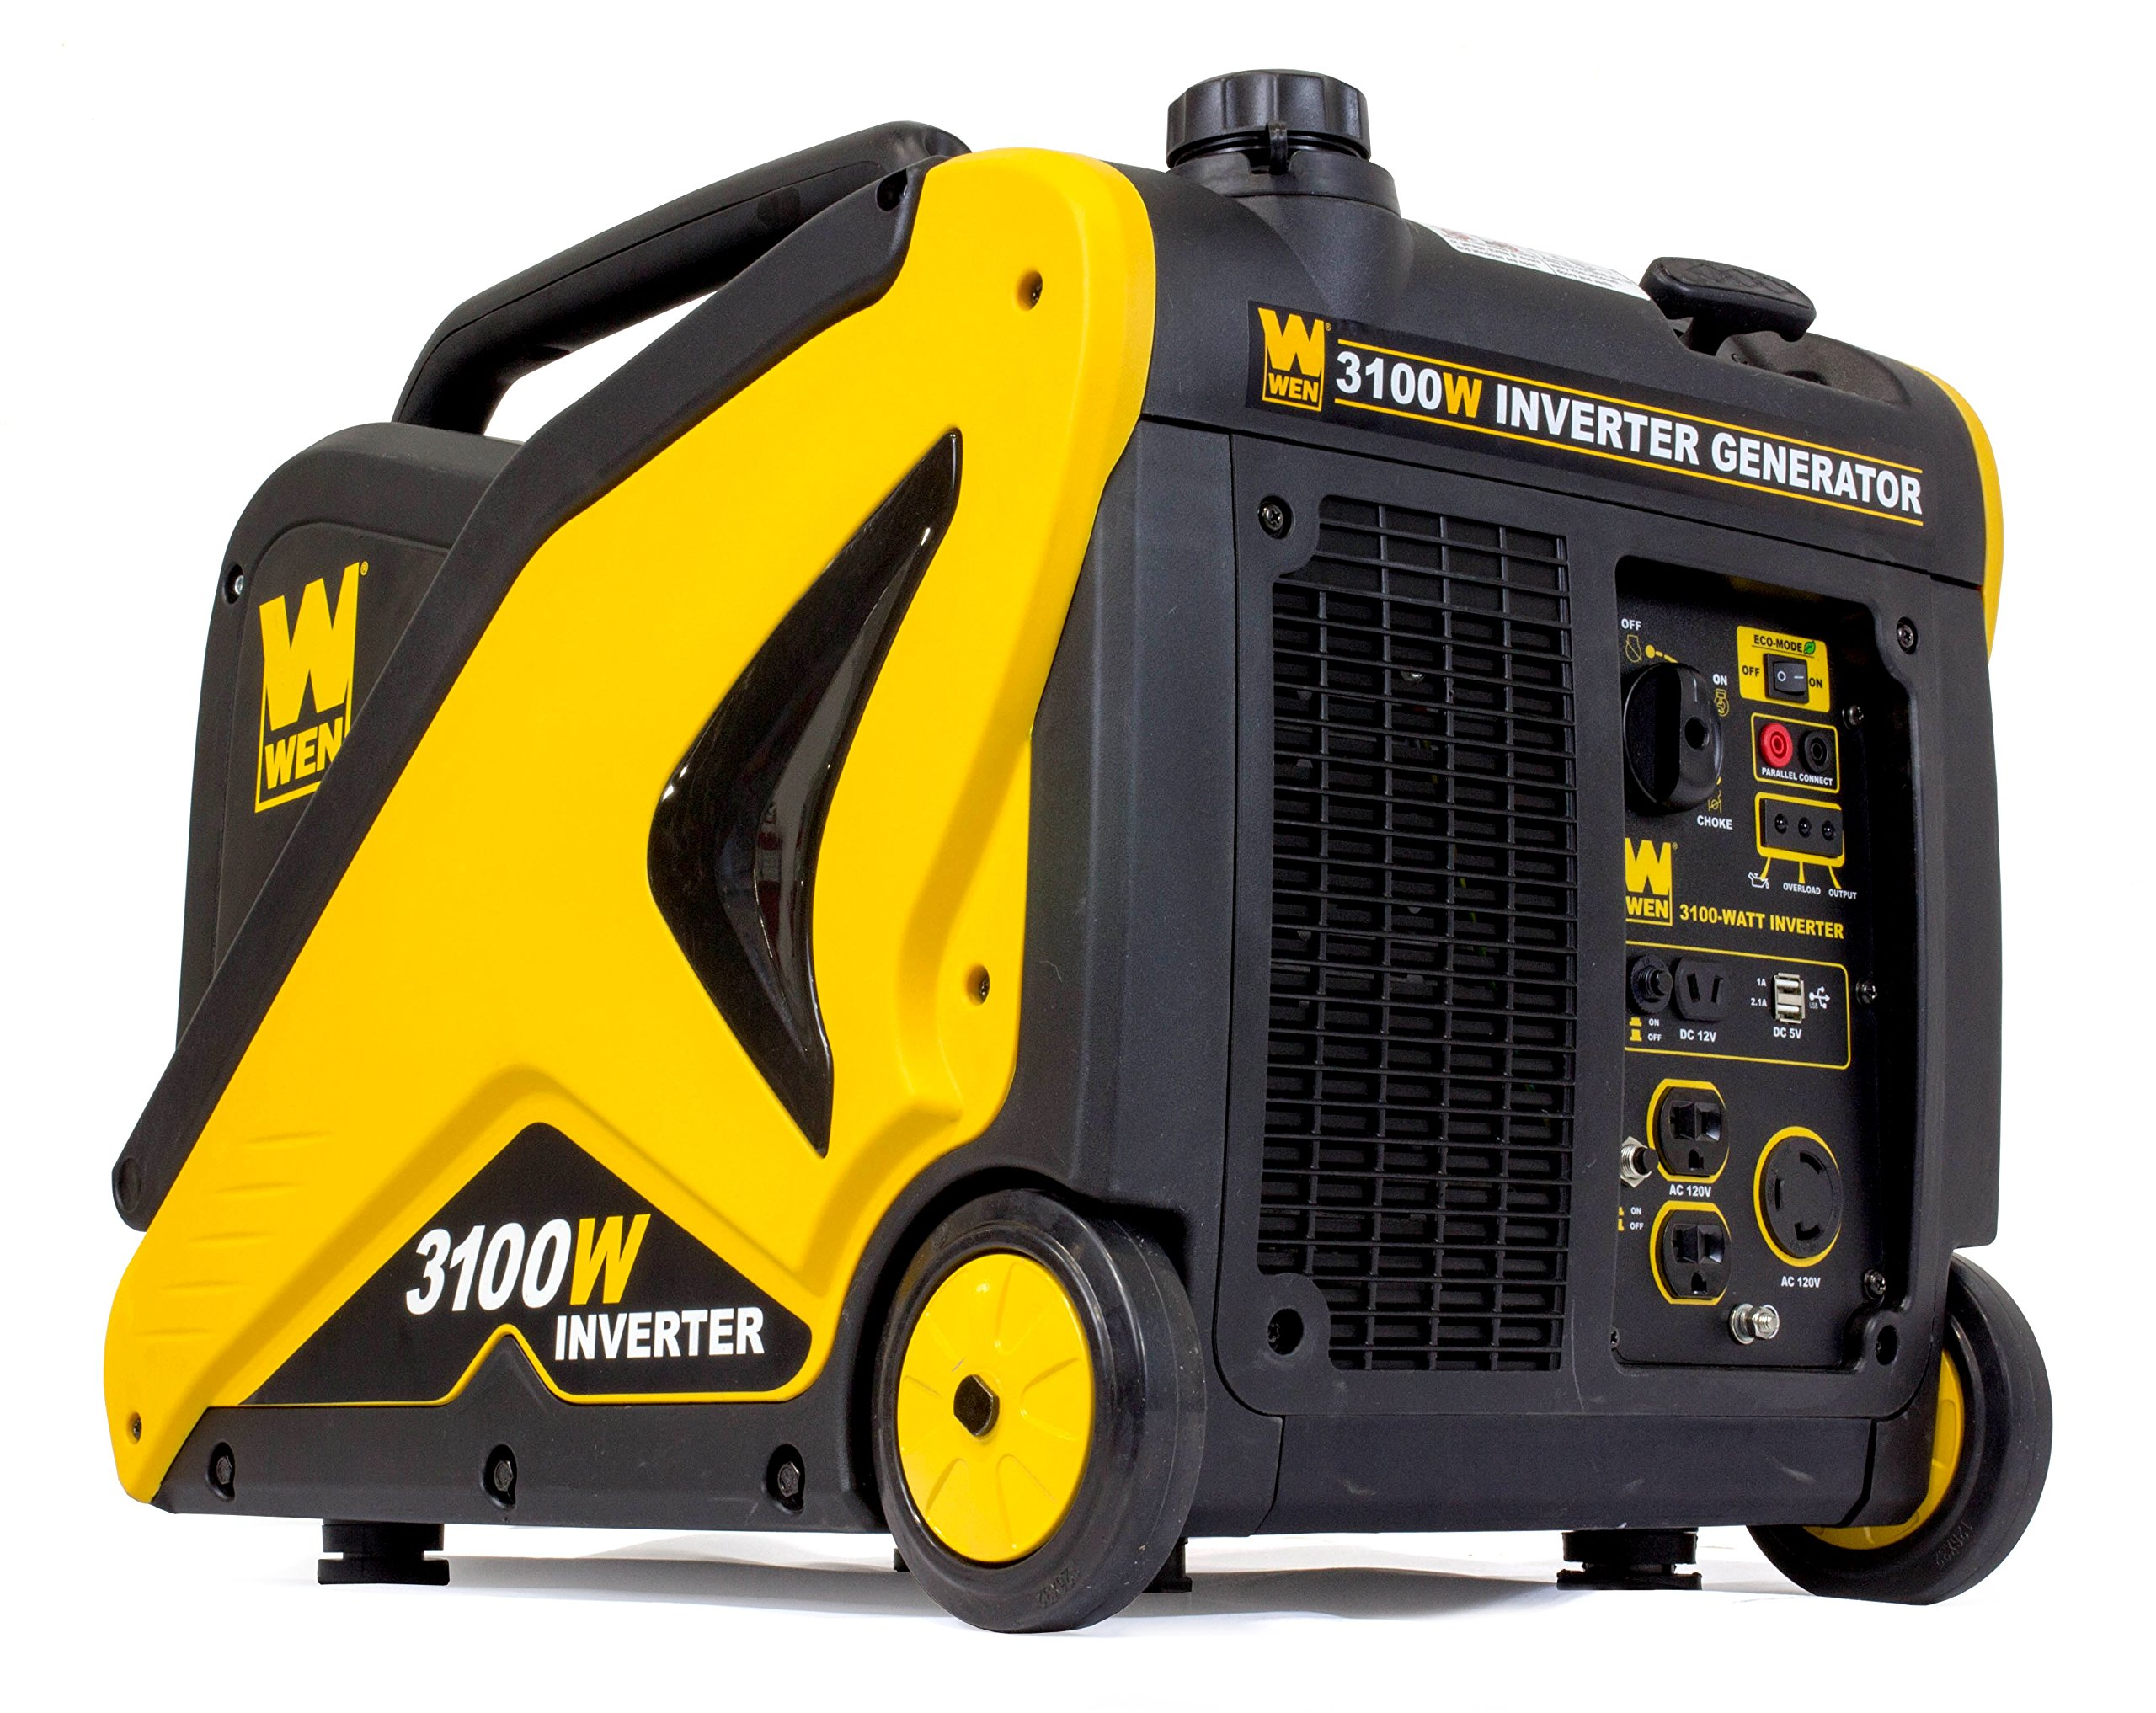 WEN 56310i CARB Compliant Inverter Generator With Built-in